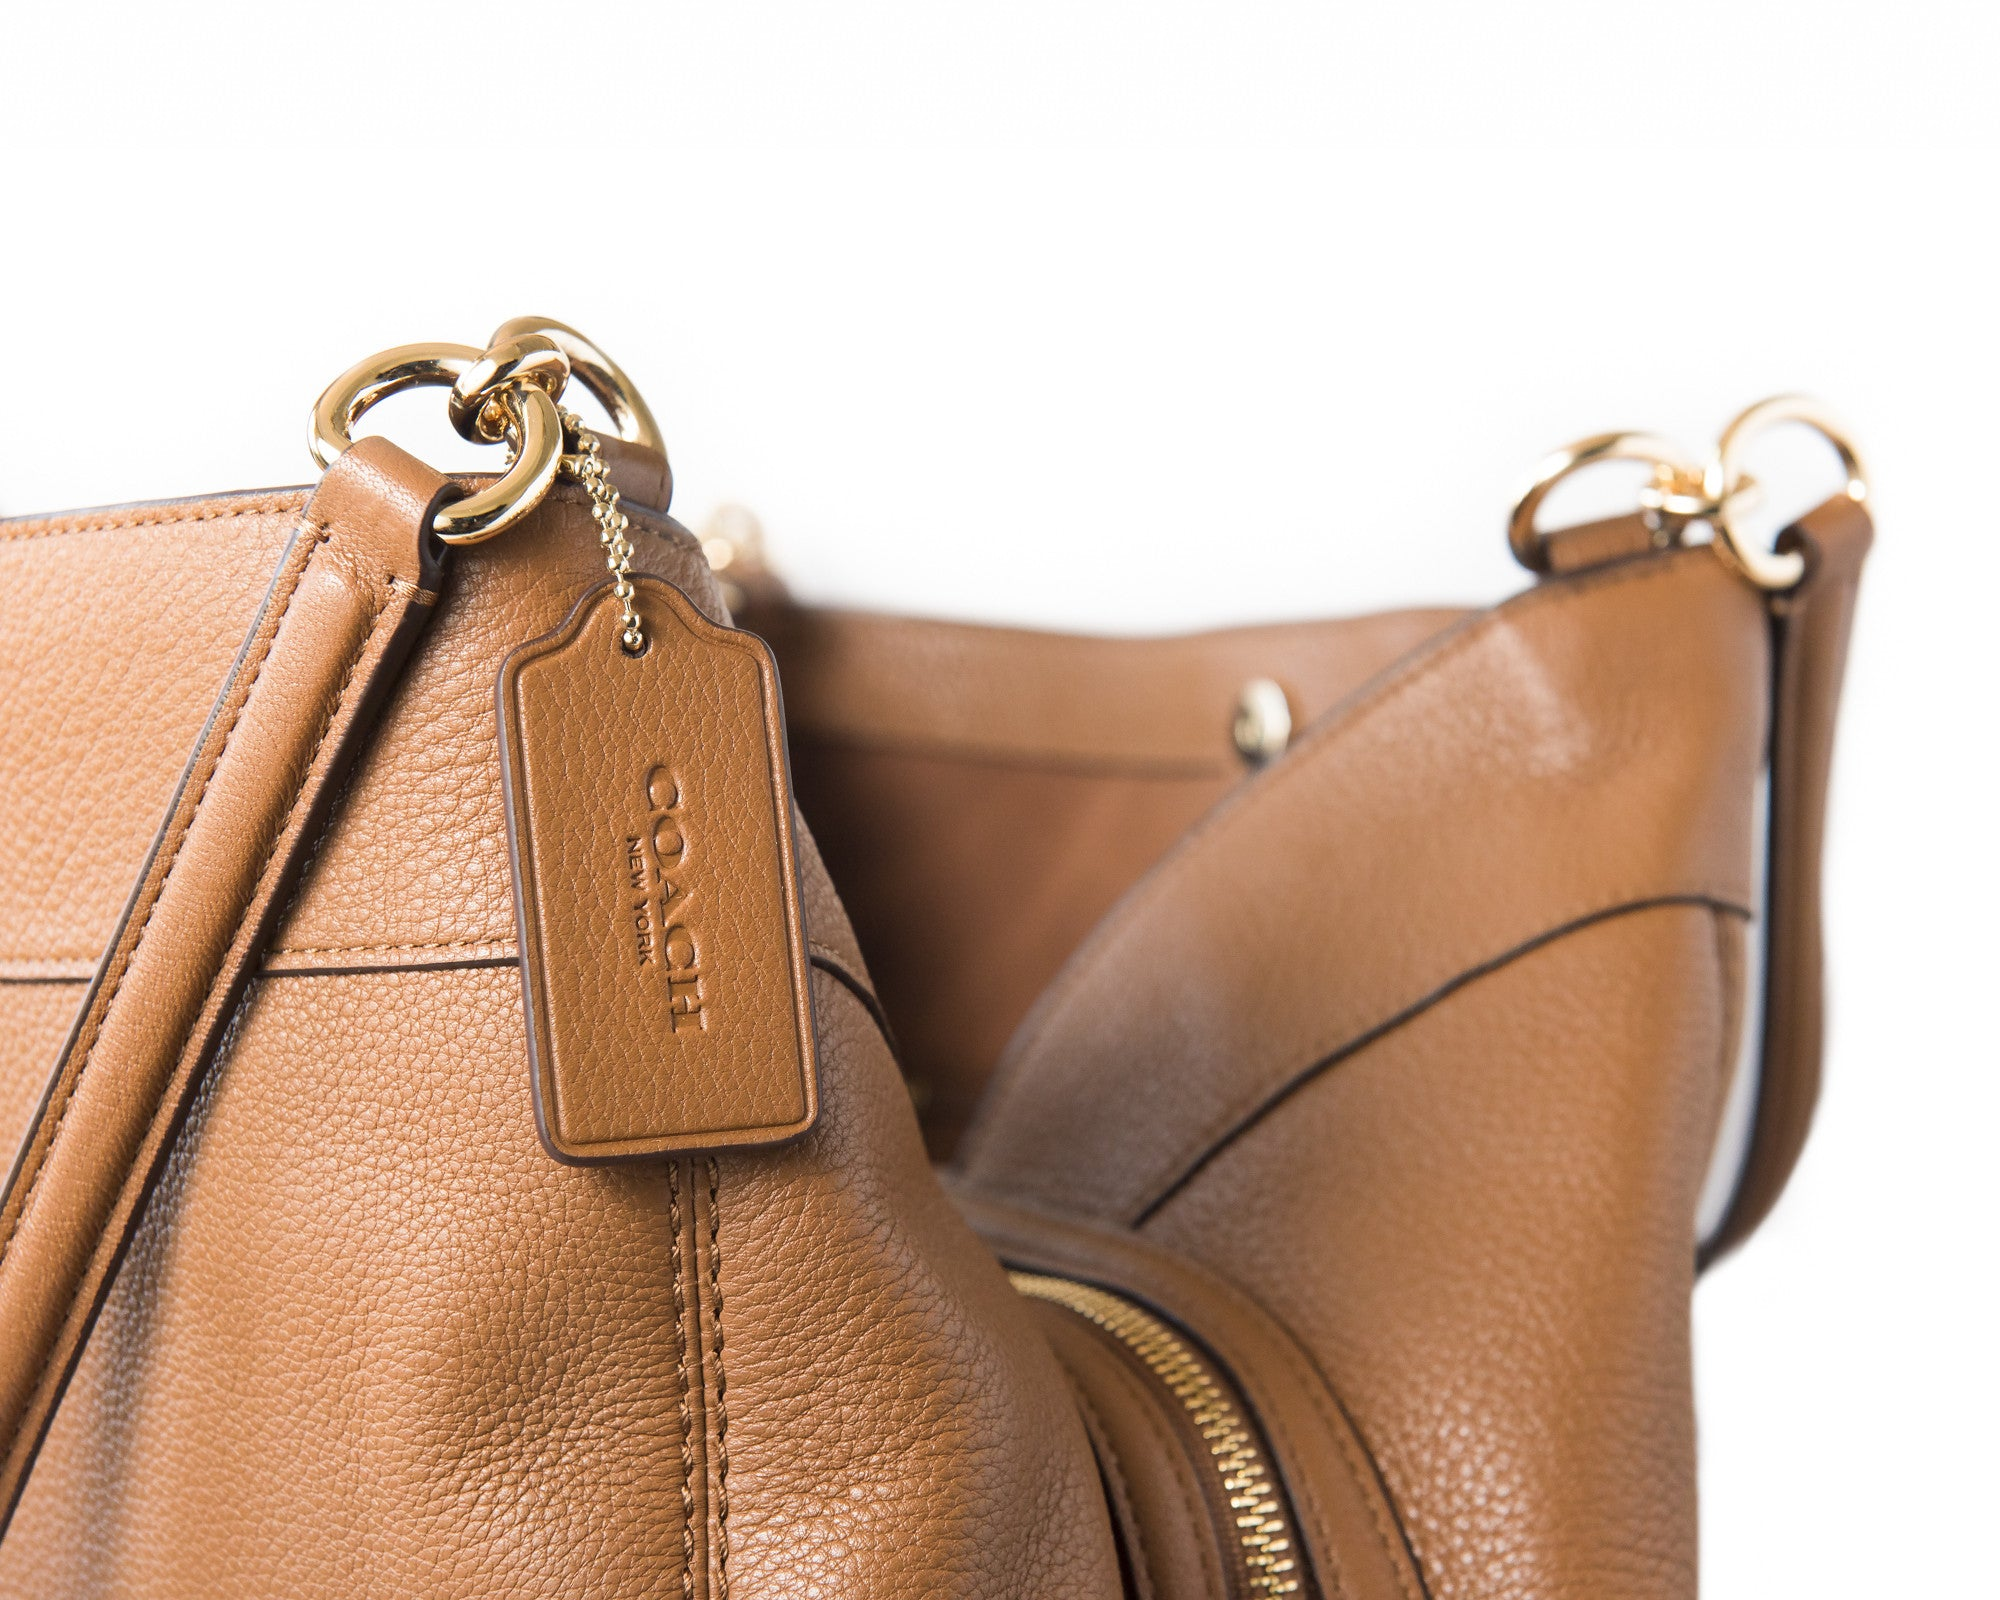 Coach Lexy Shoulder Bag In Pebble Leather Saddle Gold F57545 - Watchcove 47a7972271a72